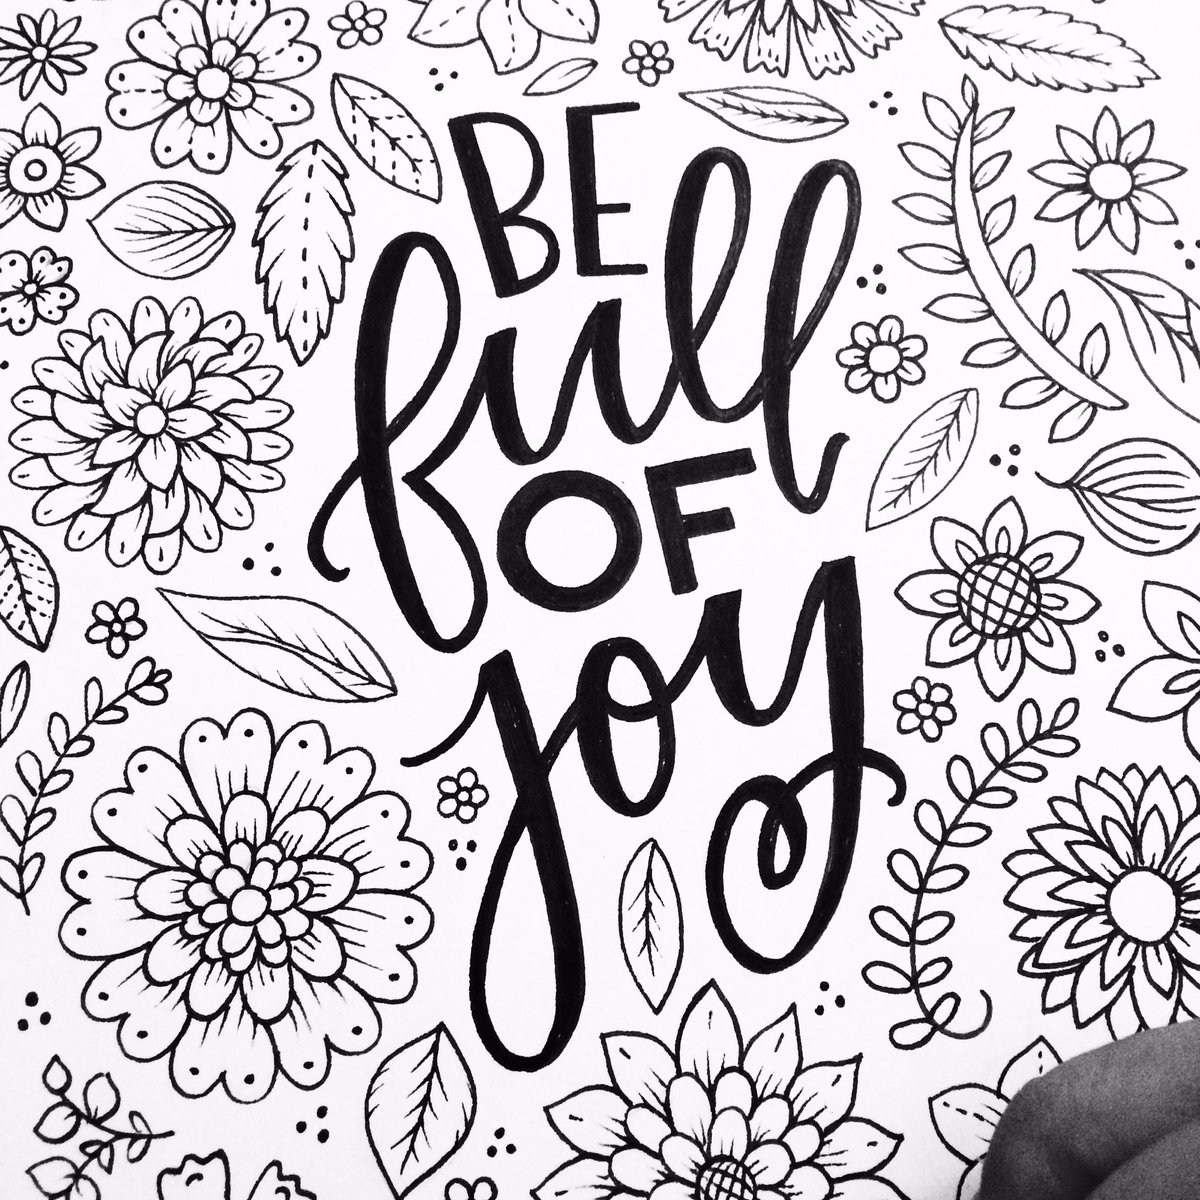 Final #adultcoloringbook page!! #woohoo @HandmadeHour #bejoyful #adultcoloring #SmallBusiness #Calligraphy #handmade #ColoringBook #artist <br>http://pic.twitter.com/qk6AiCRuzz